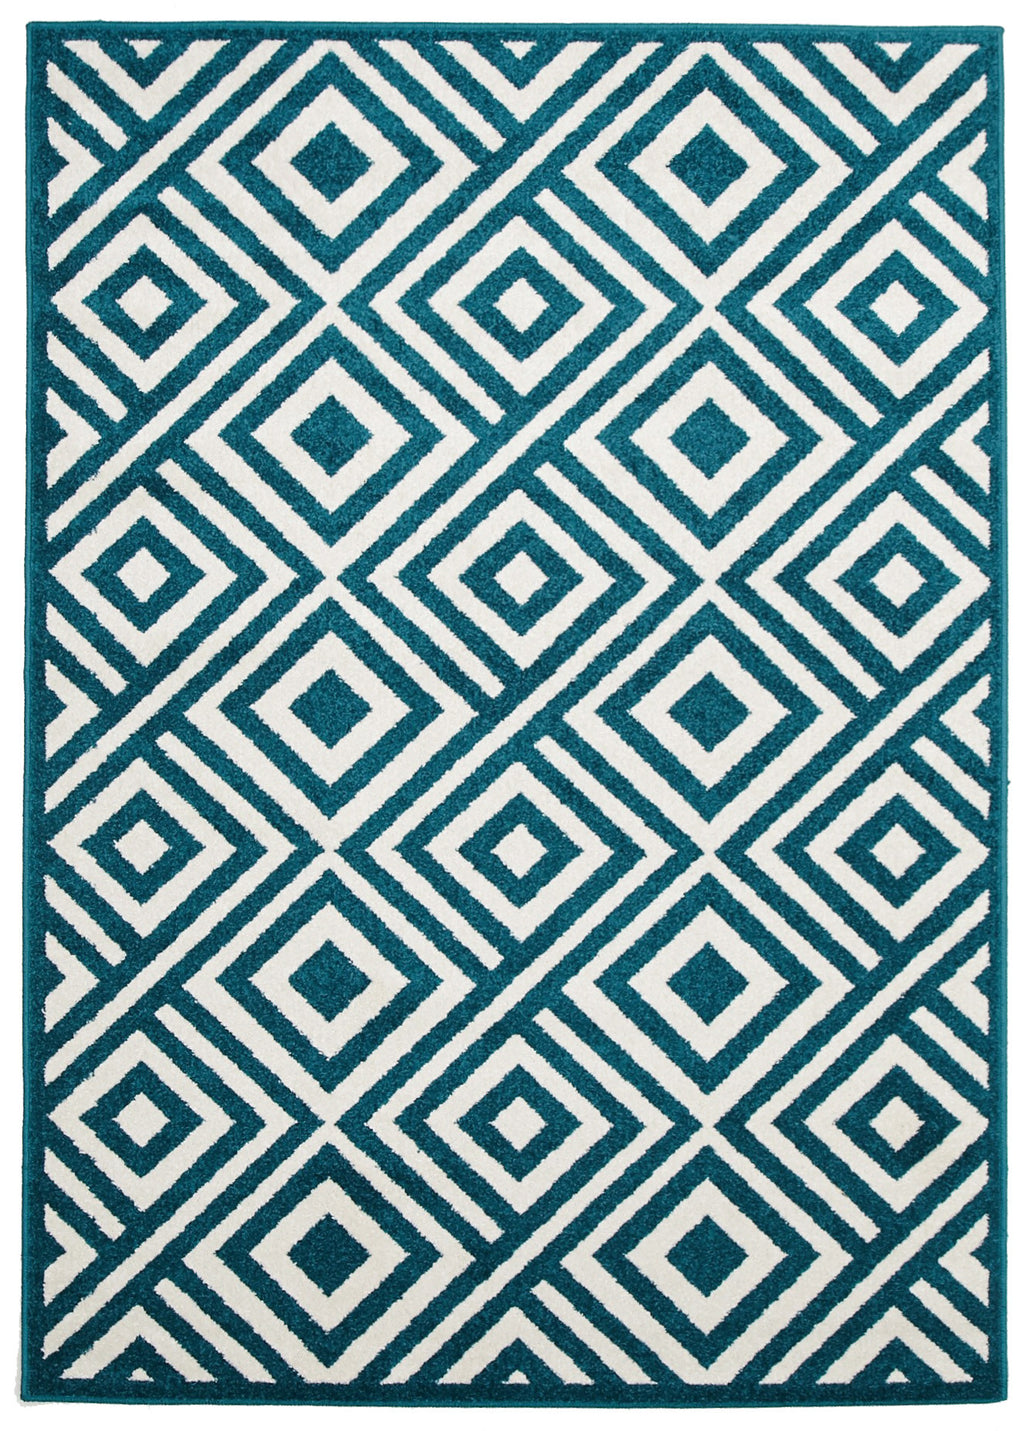 Galaxy Indoor Outdoor Matrix Rug Peacock Blue